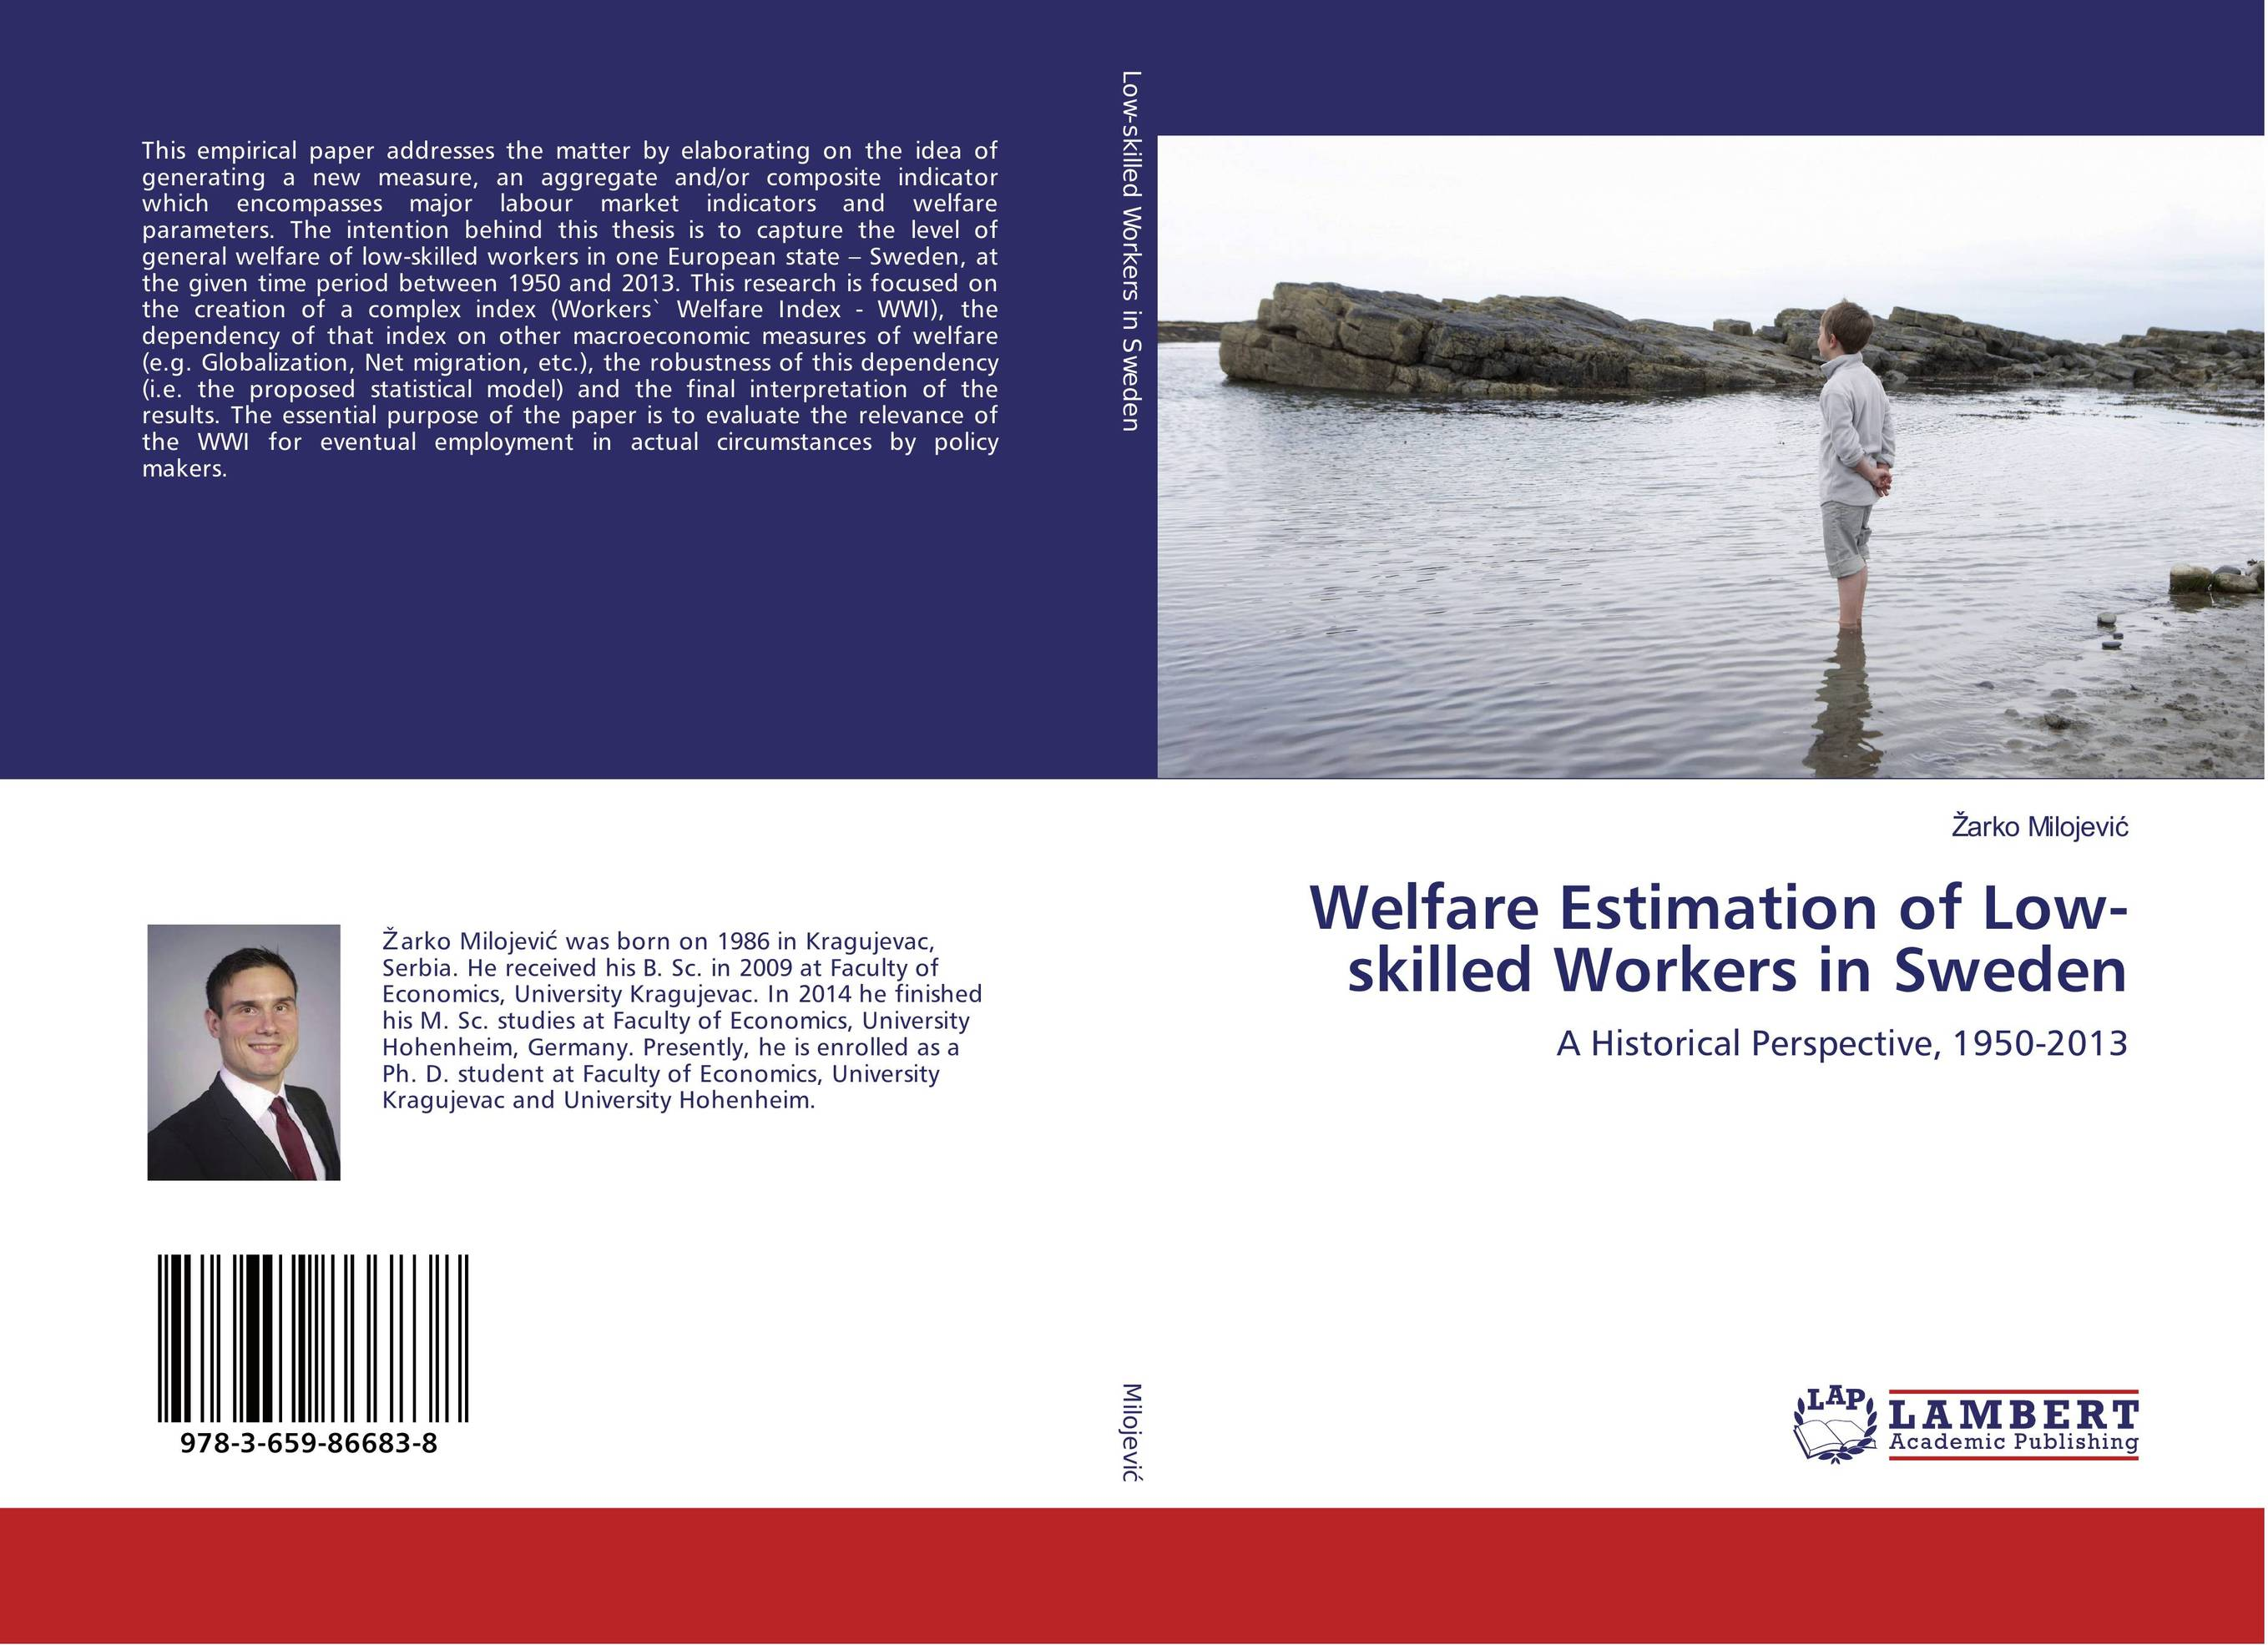 Welfare Estimation of Low-skilled Workers in Sweden